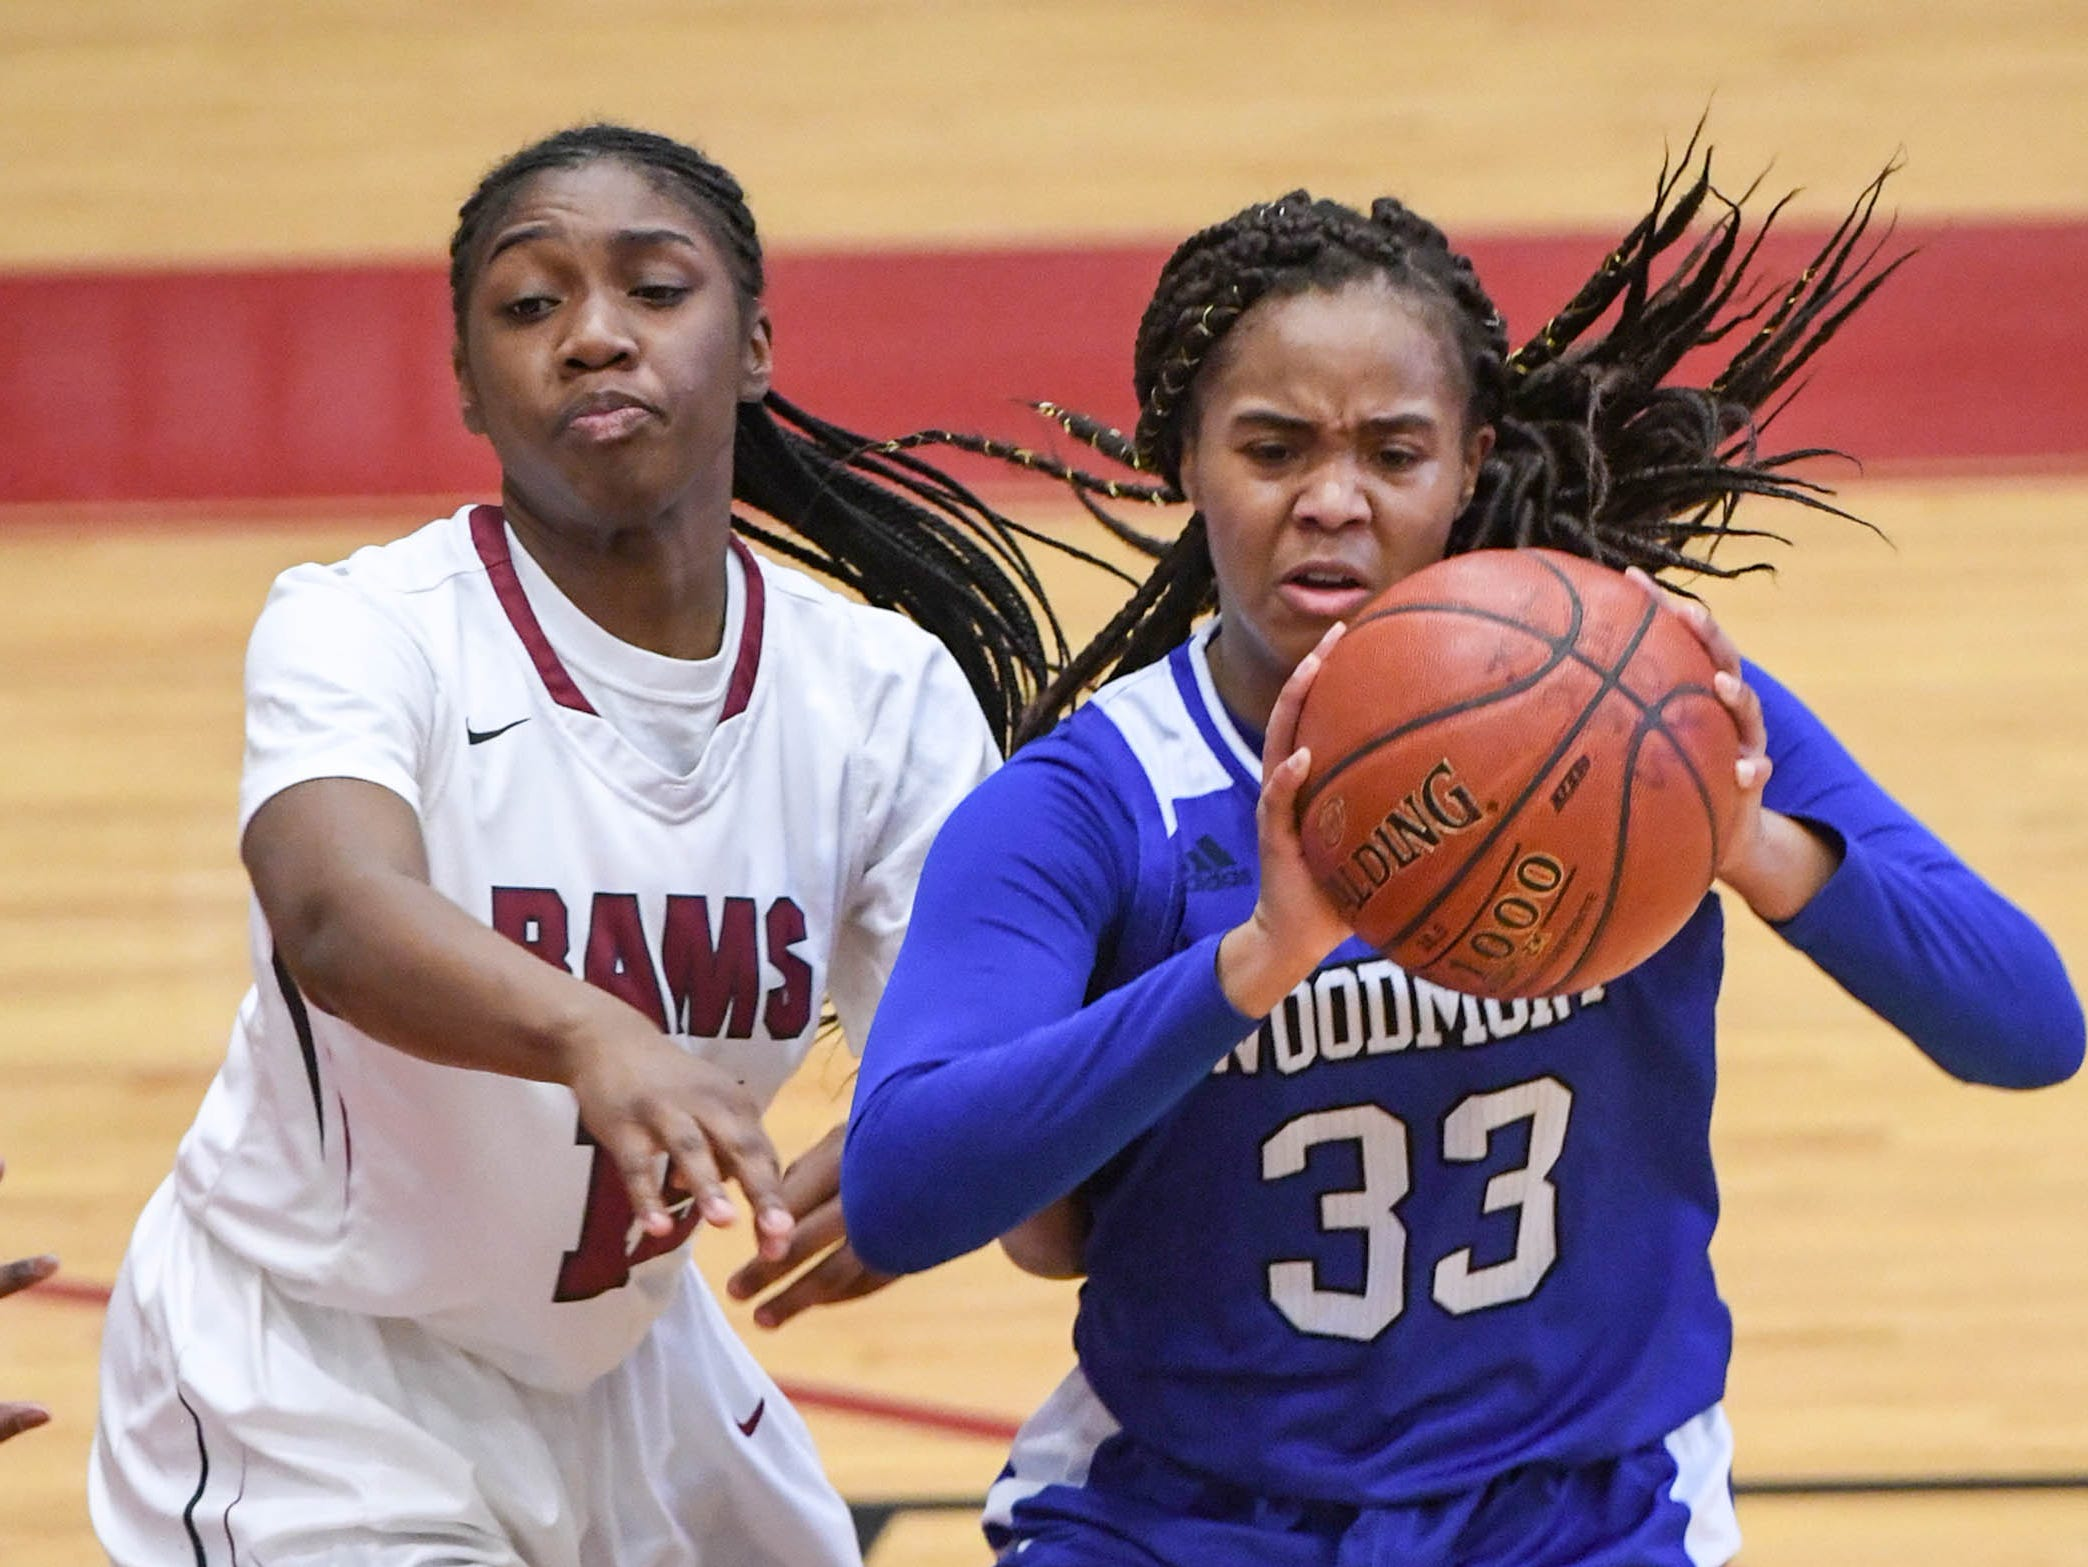 Westside senior Tanazza Wardlaw(15) pressures Woodmont senior Kitara Henry(33) during the third quarter at Westside High School in Anderson on Tuesday.